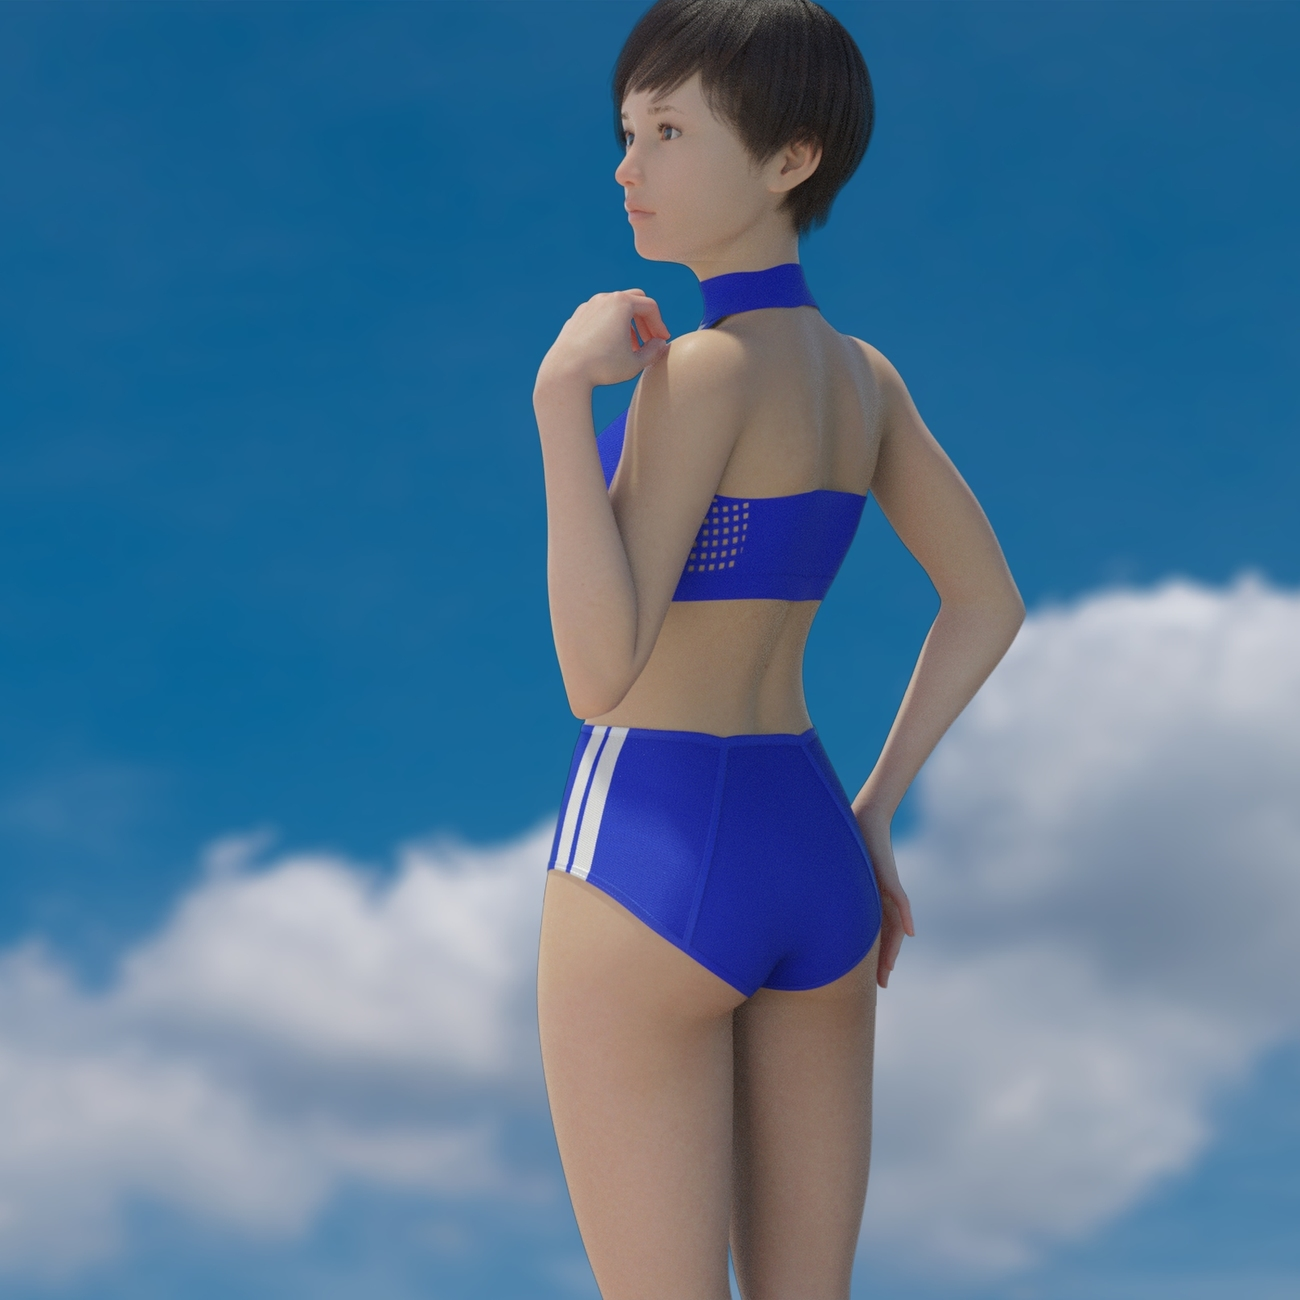 x7 Sport suit Materials For Latex Simplicity -1-